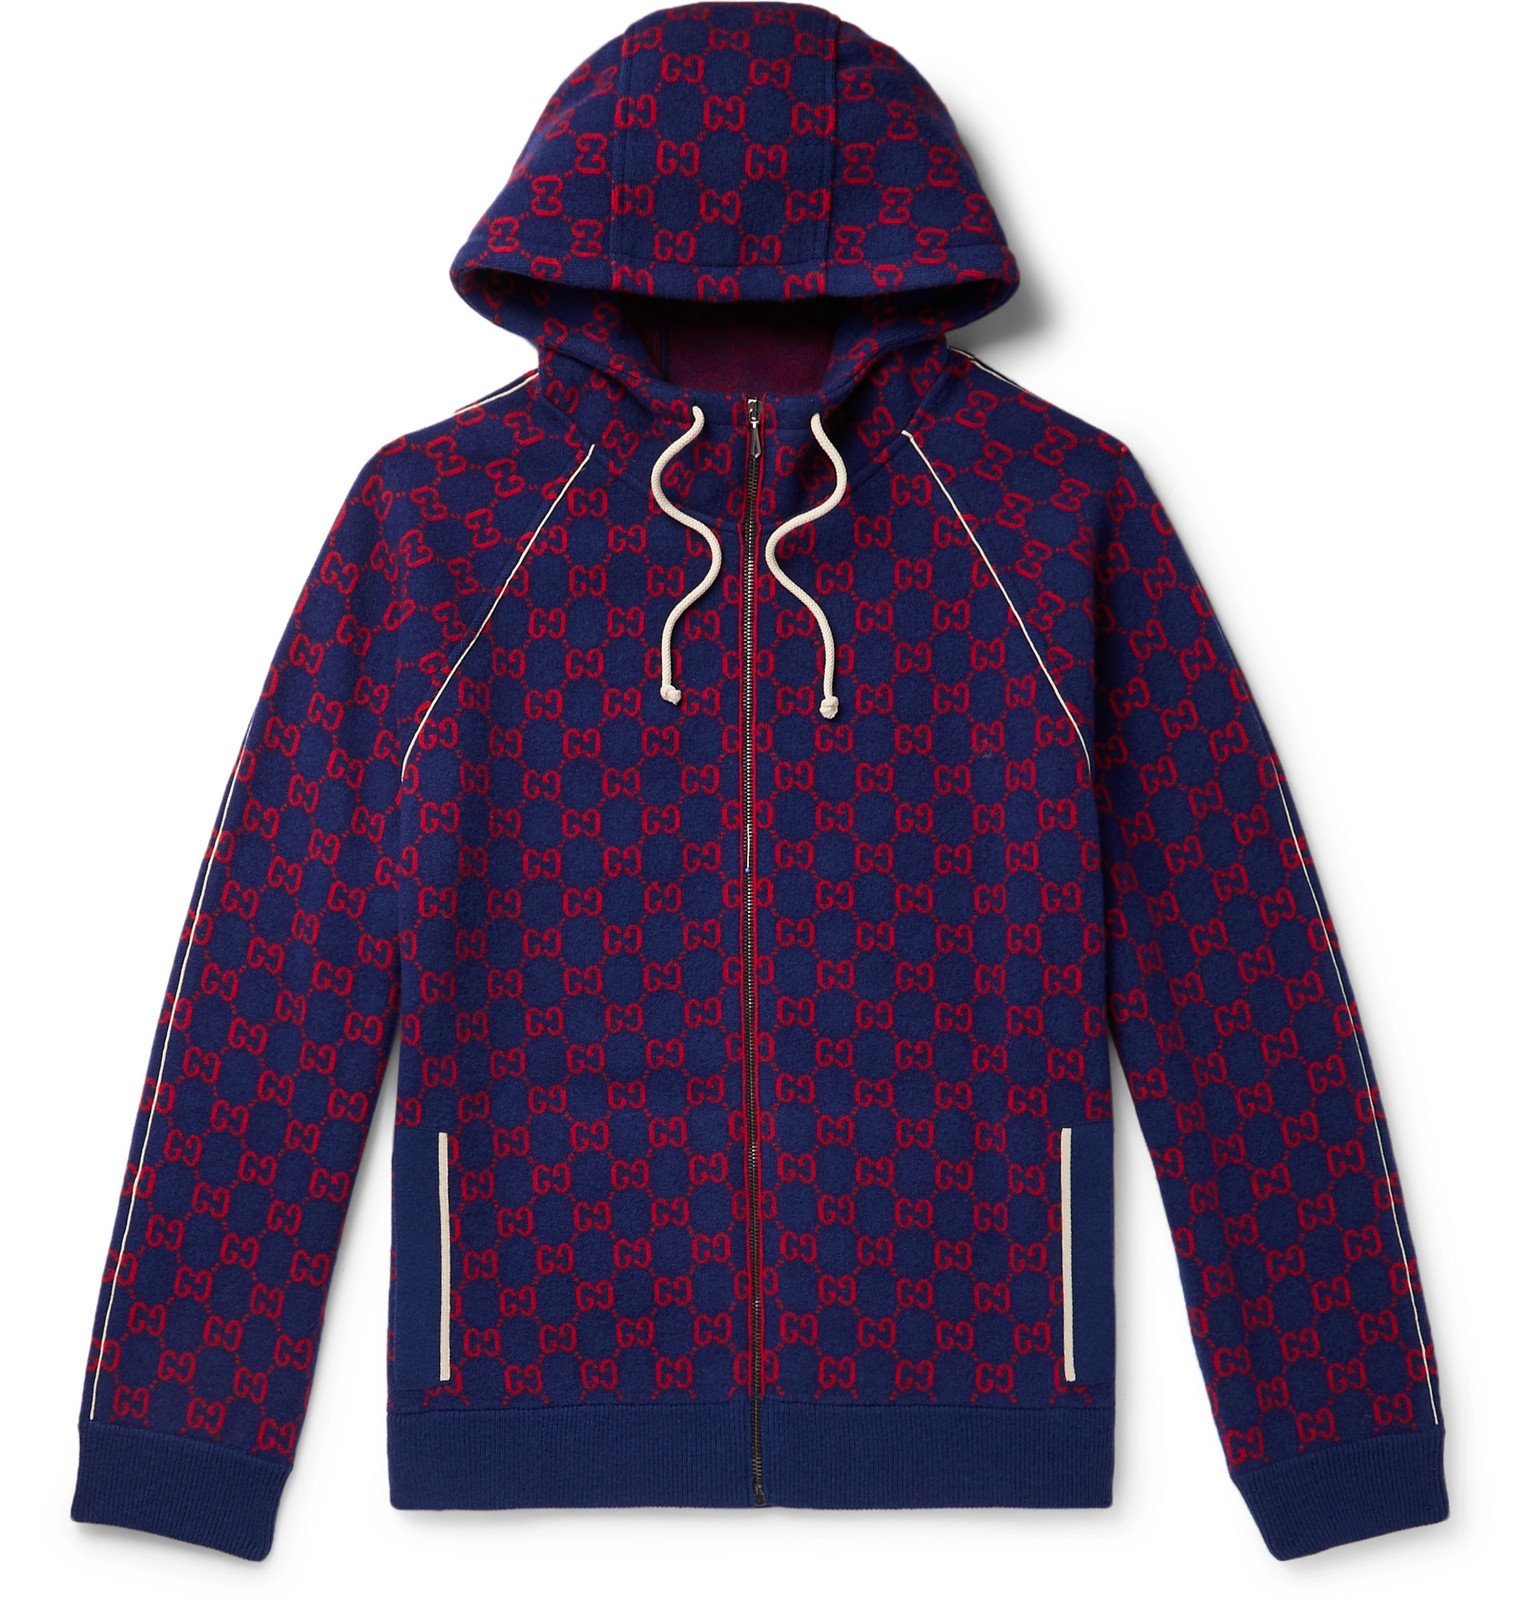 offer discounts cheaper sale retailer Gucci - Logo-Jacquard Wool and Cashmere-Blend Zip-Up Hoodie - Blue ...